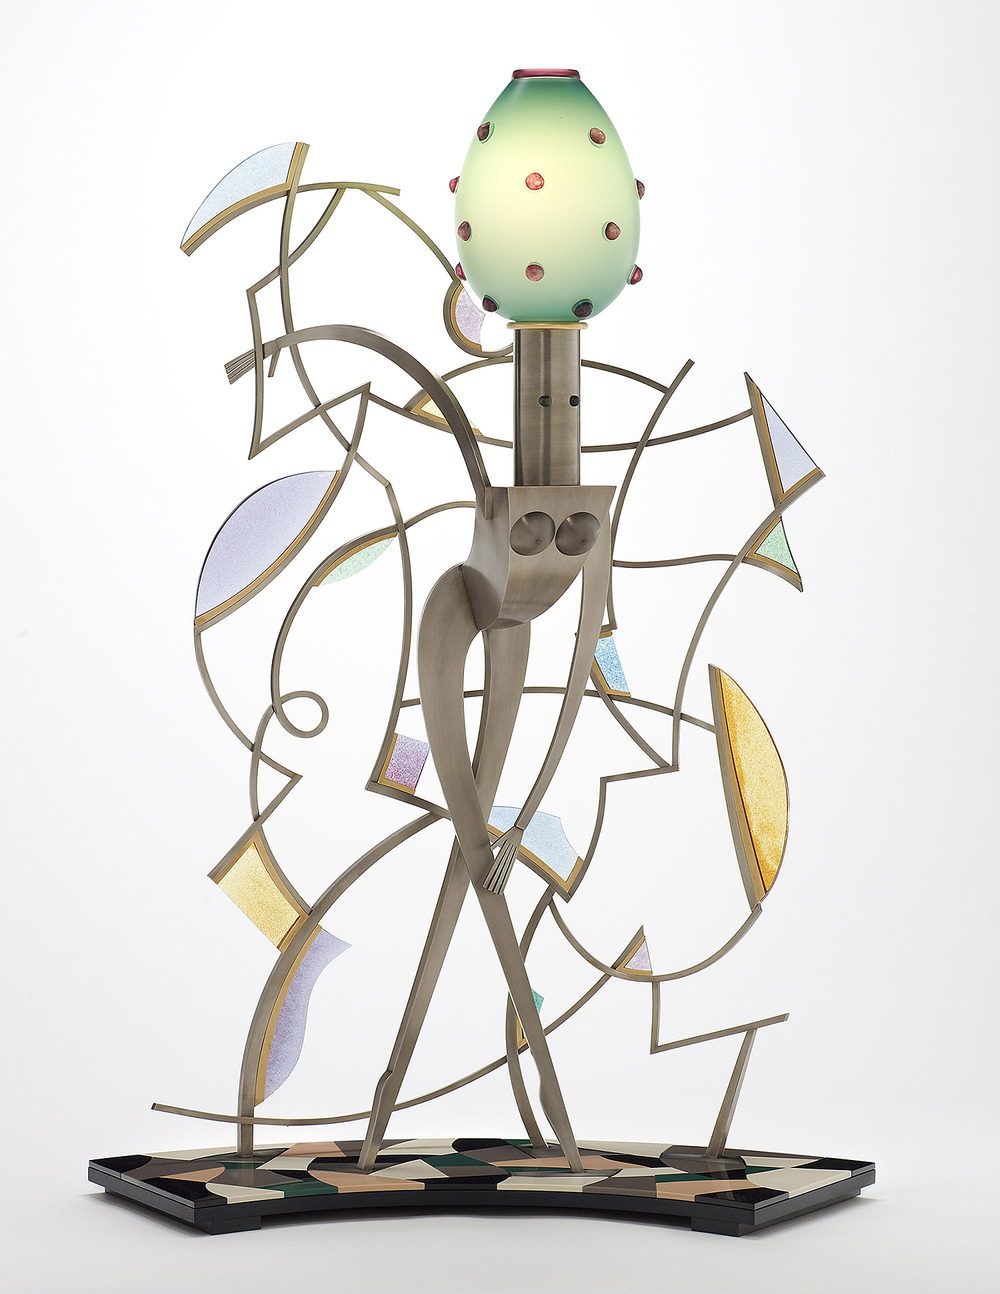 Somewhere   2007. Blown glass, nickel and gold-plated bronze, aluminum, Vitrolite and lampworked glass. 39 x 29 x 13½""